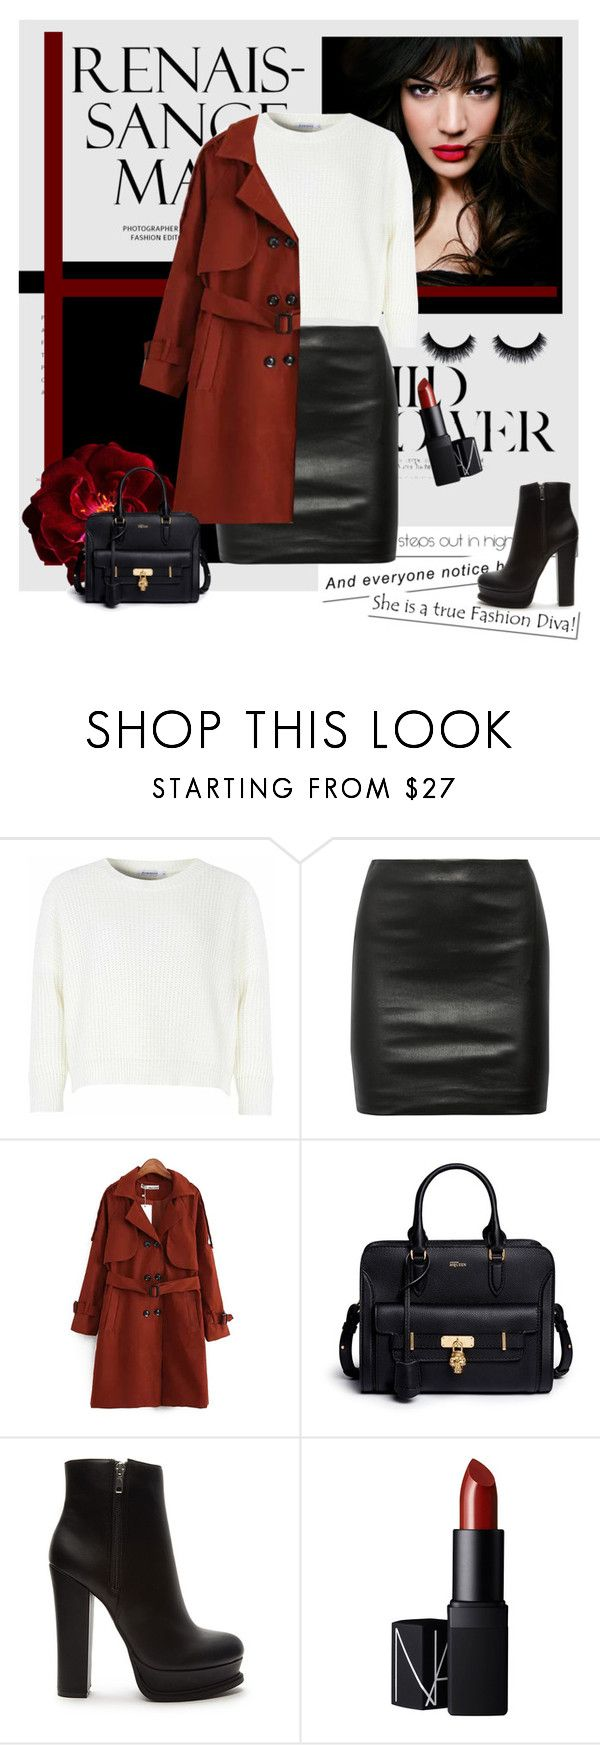 """""""OOTD#6"""" by tjlillian ❤ liked on Polyvore featuring IVI, Glamorous, The Row, Chicnova Fashion, Alexander McQueen, Forever 21, NARS Cosmetics, ootd, Halloweenparty and Halloween2015"""